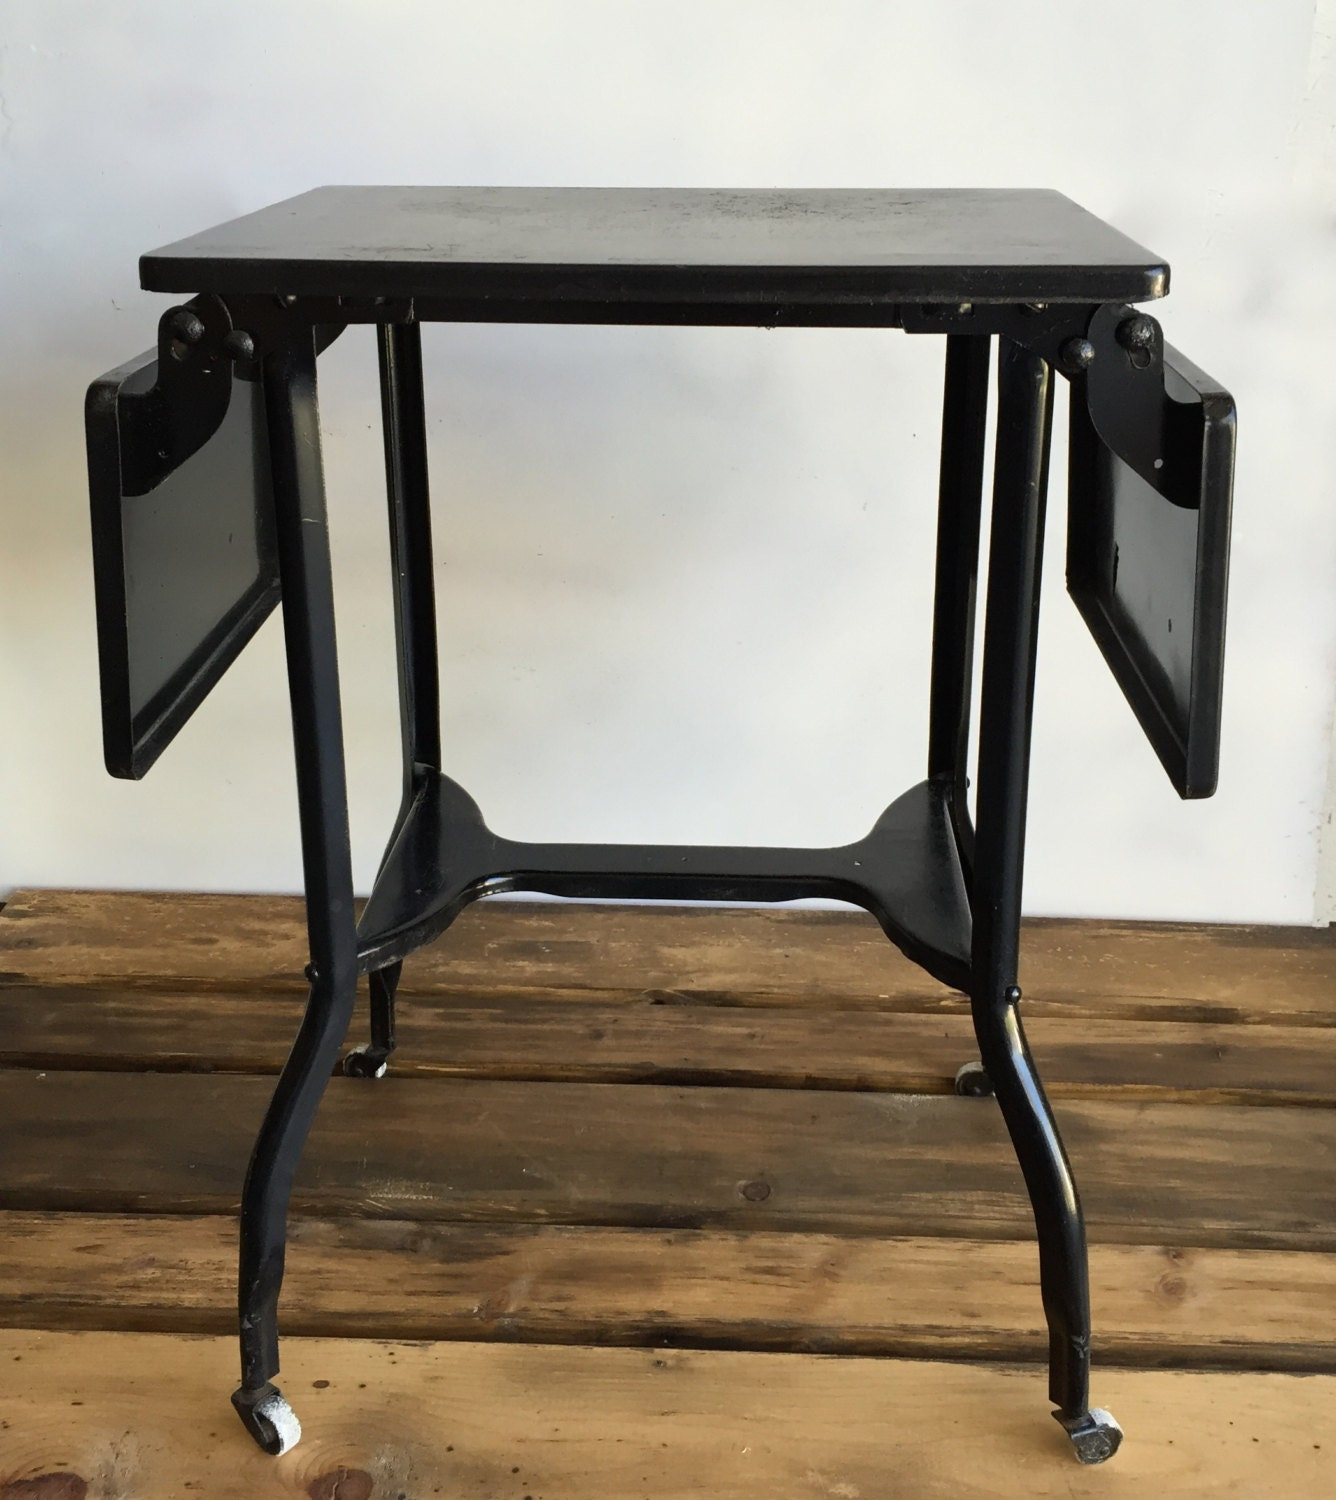 Black Vintage Metal Typing Table With Fold Down Leaves On  Wheels/Casters End Table, Bar Cart, Printer Stand, Outdoor Side Table